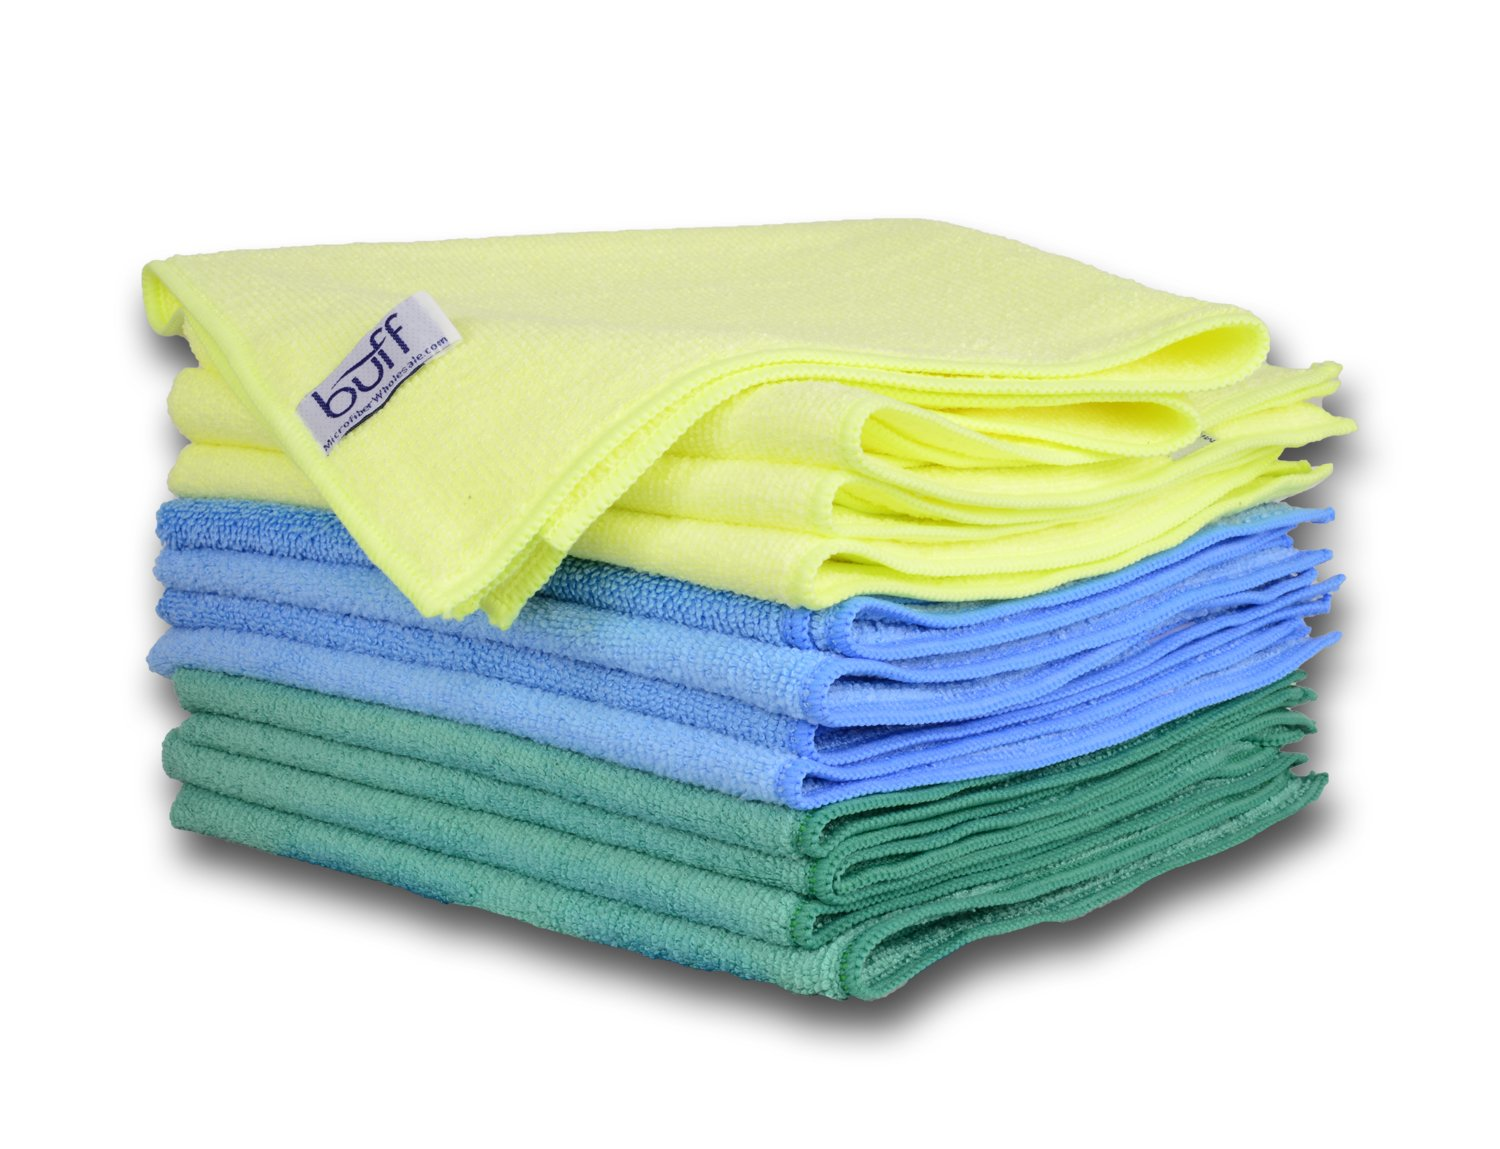 Microfiber cloth - a versatile cleaning tool 42